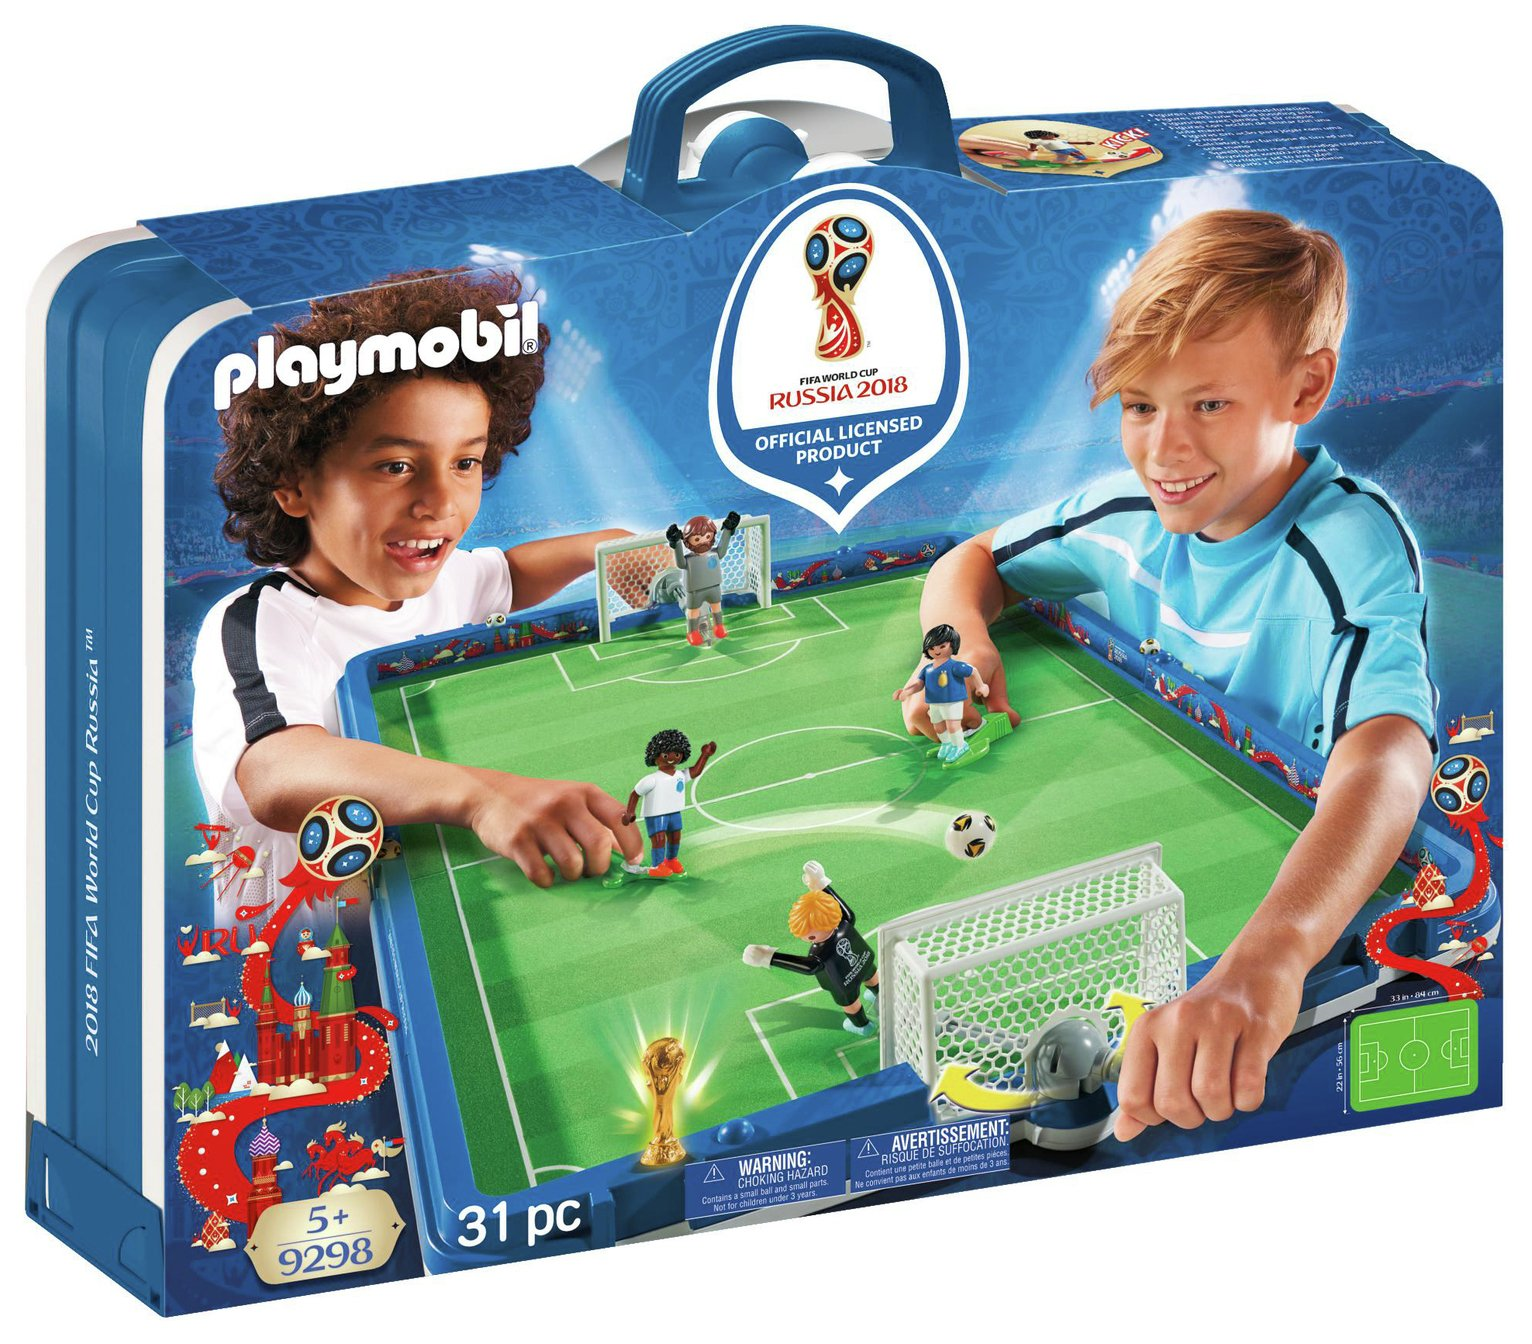 Playmobil 9298 Take Along 2018 FIFA World Cup Russia Arena